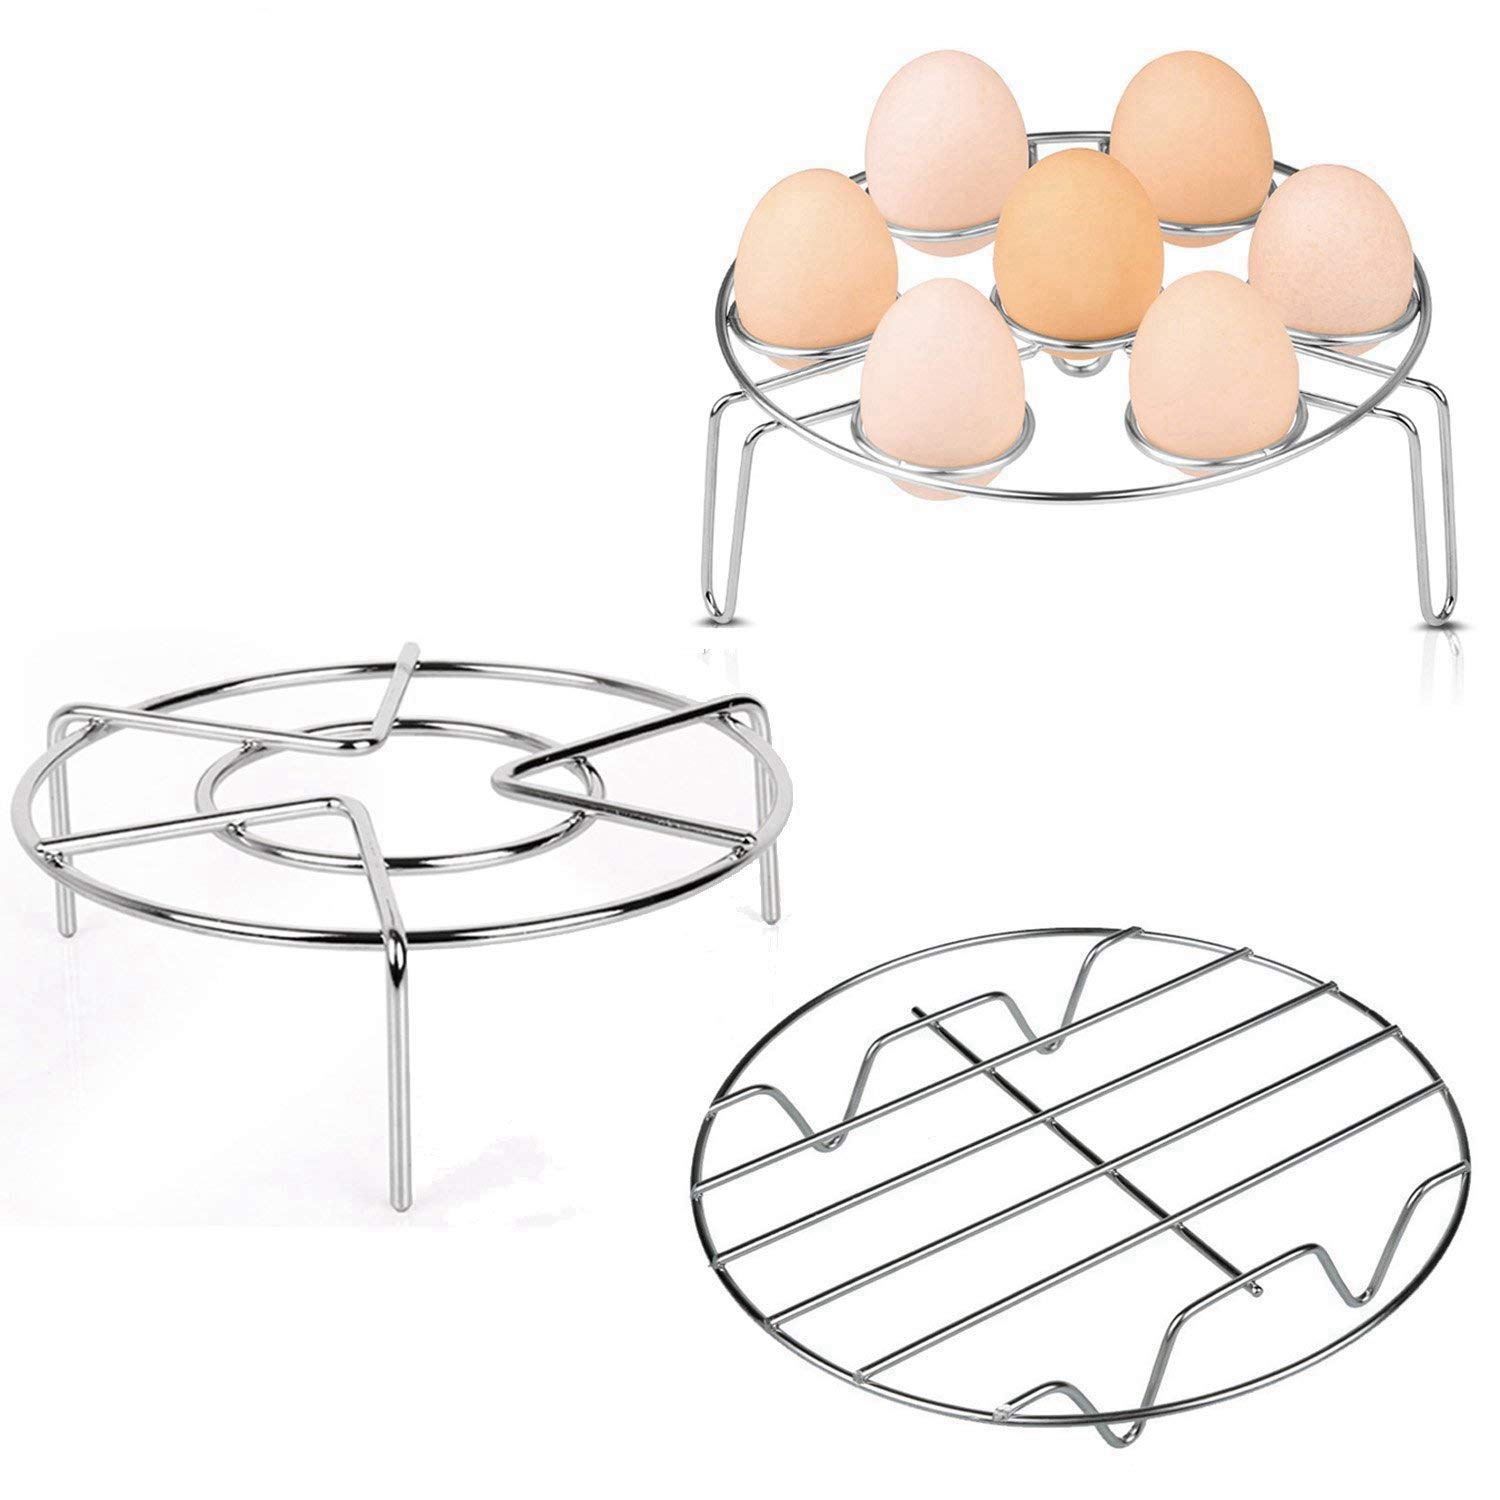 Steaming Rack, APHQUA Stainless Steel Steamer Rack Stand Wire Steaming Rack and Egg Steamer Rack for Pressure Cooker Kitchen Cooking Steaming Holder(3Pack)